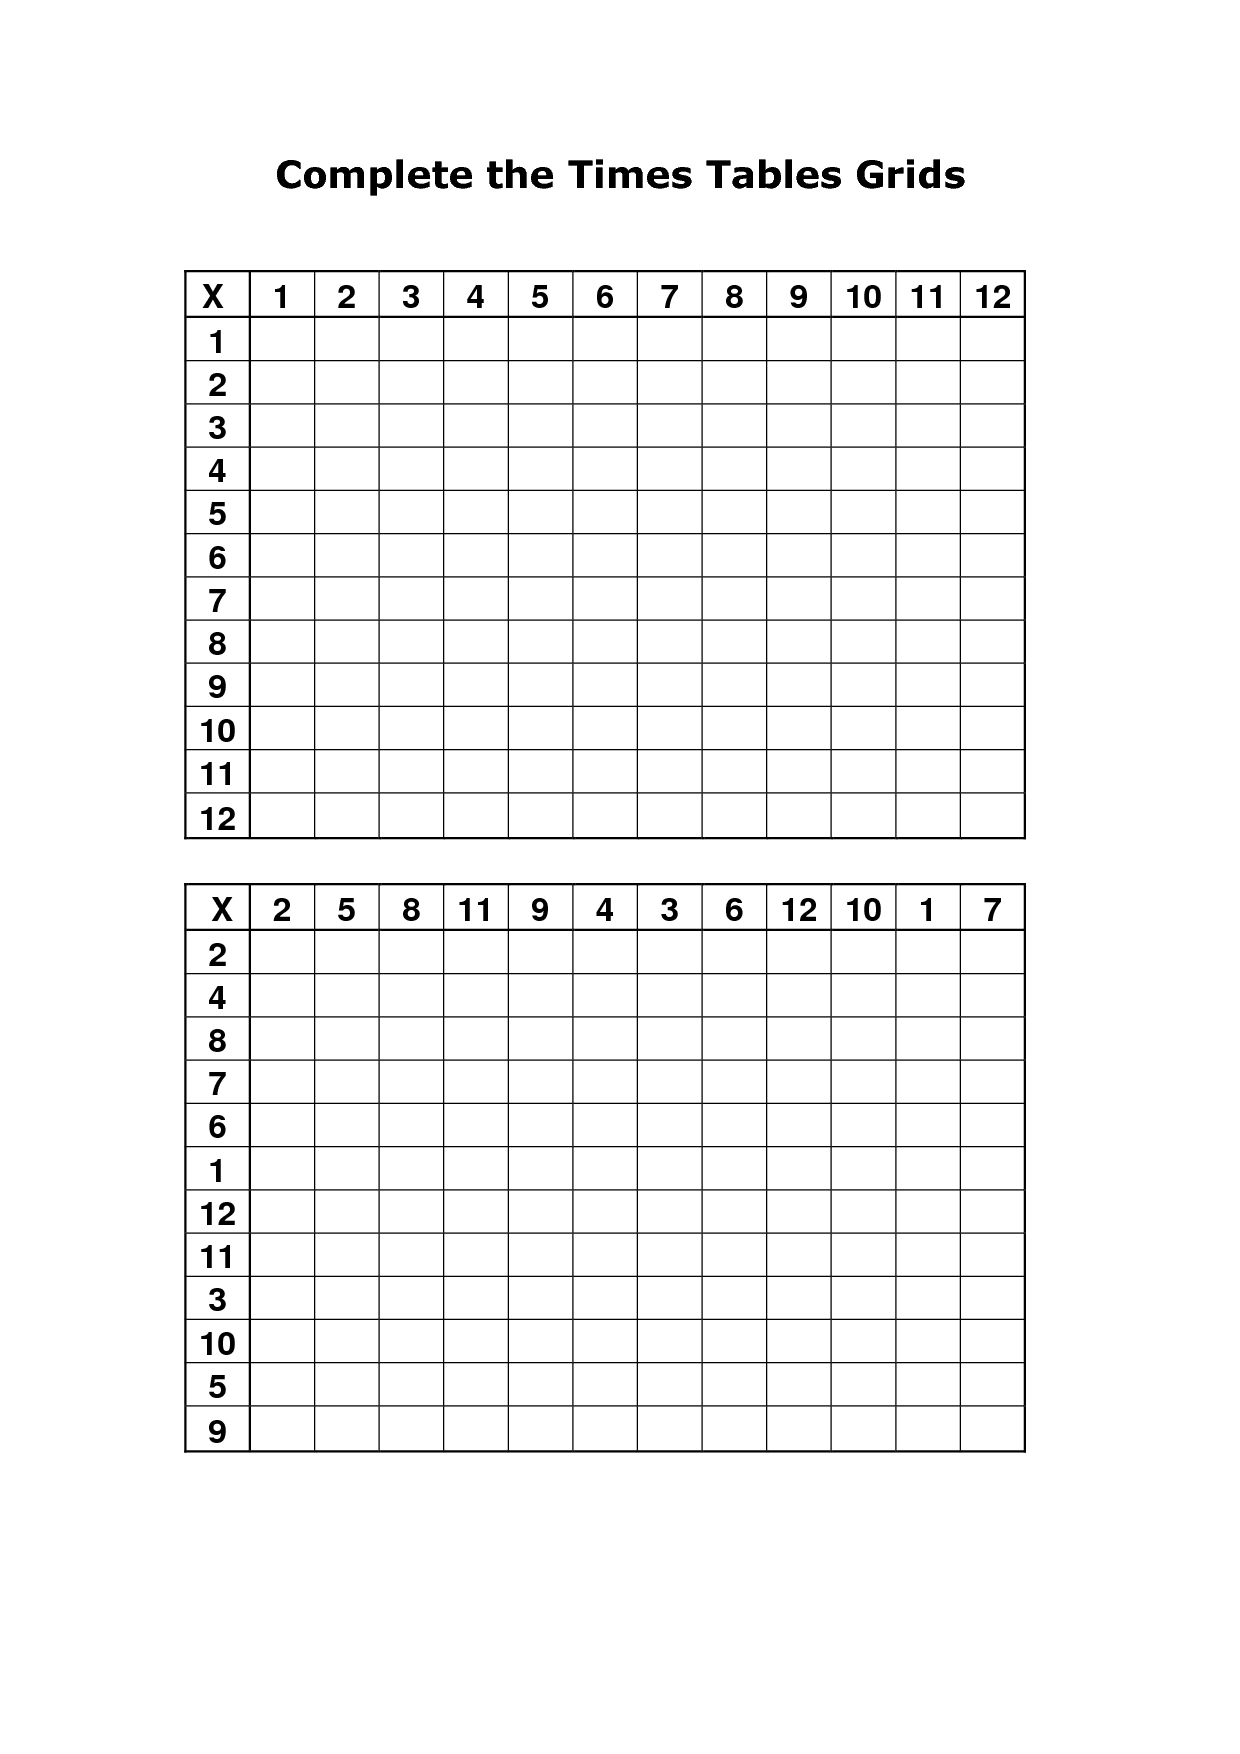 Grid blank factor worksheets resume entry level objective tattoo grid blank factor worksheets design templates invitation templates blank times table grid printable 549208 grid blank gamestrikefo Image collections